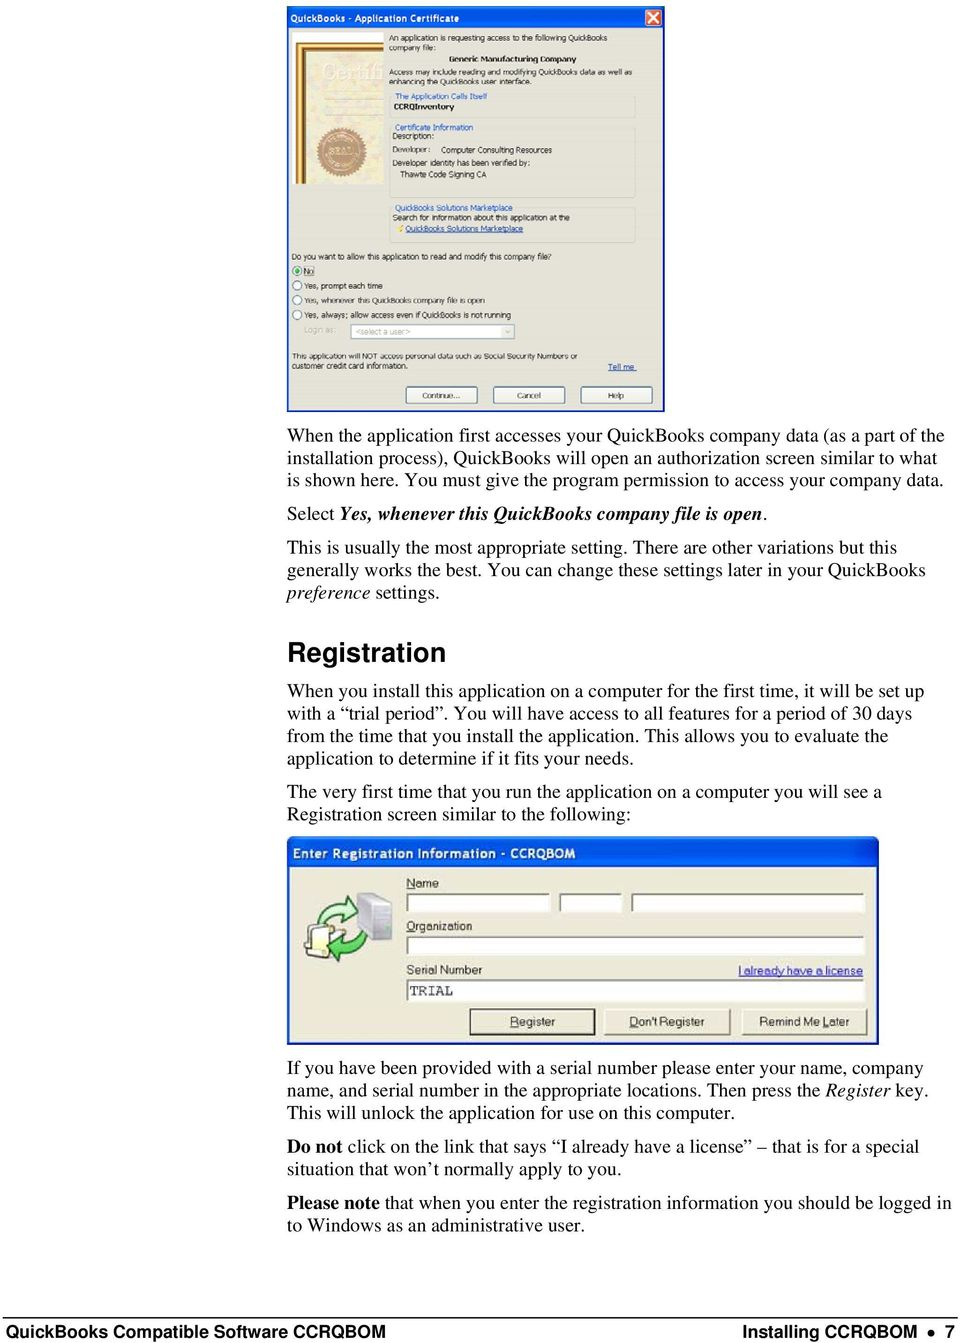 QuickBooks Compatible Software CCRQBOM  By CCRSoftware - PDF